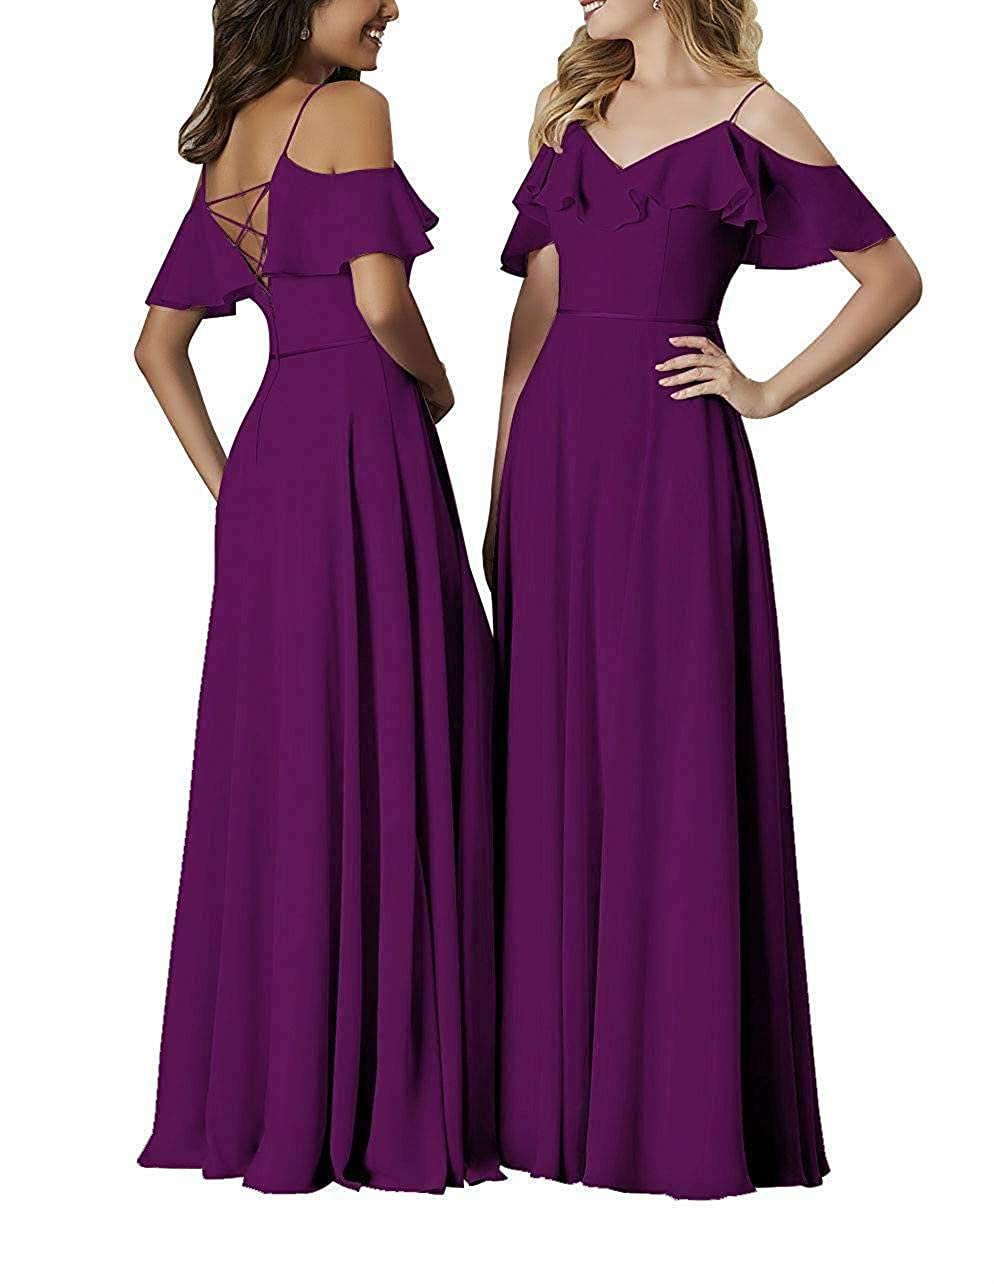 Bridesmaid Dresses Long Off The Shoulder Simple Formal Gowns for Women